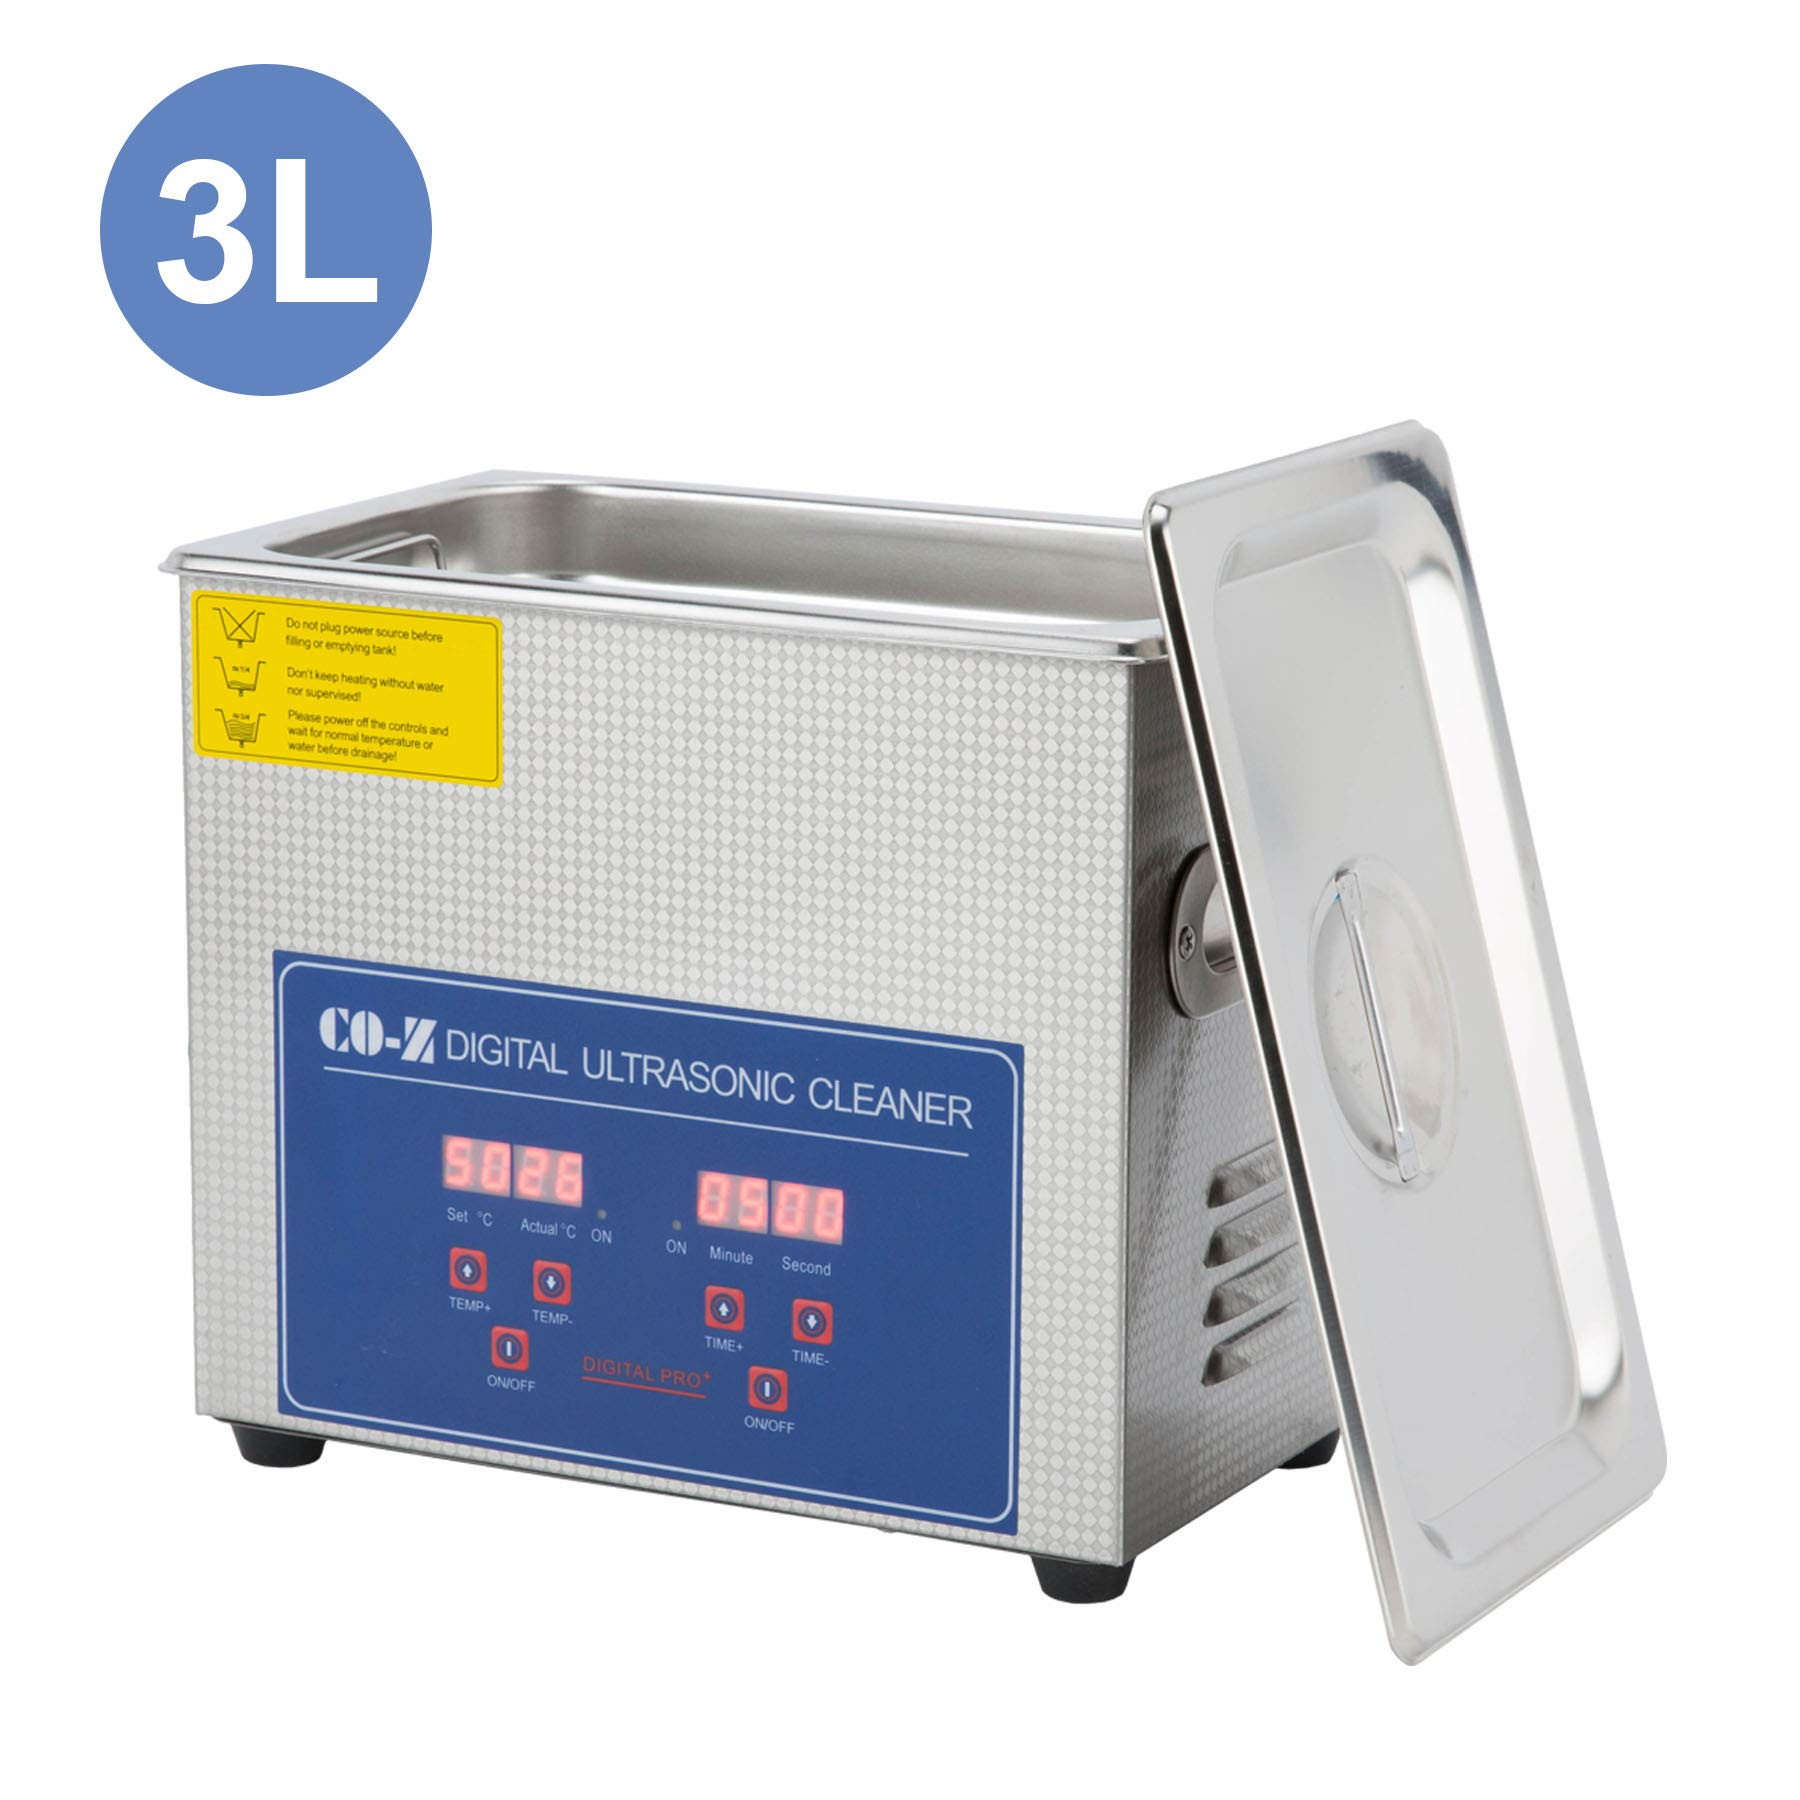 CO-Z 3L Professional Ultrasonic Cleaner with Digital Timer&Heater for Jewelry Glasses Watch Dentures Small Parts Circuit Board Dental Instrument, Industrial Commercial Ultrasound Cleaning Machine by CO-Z